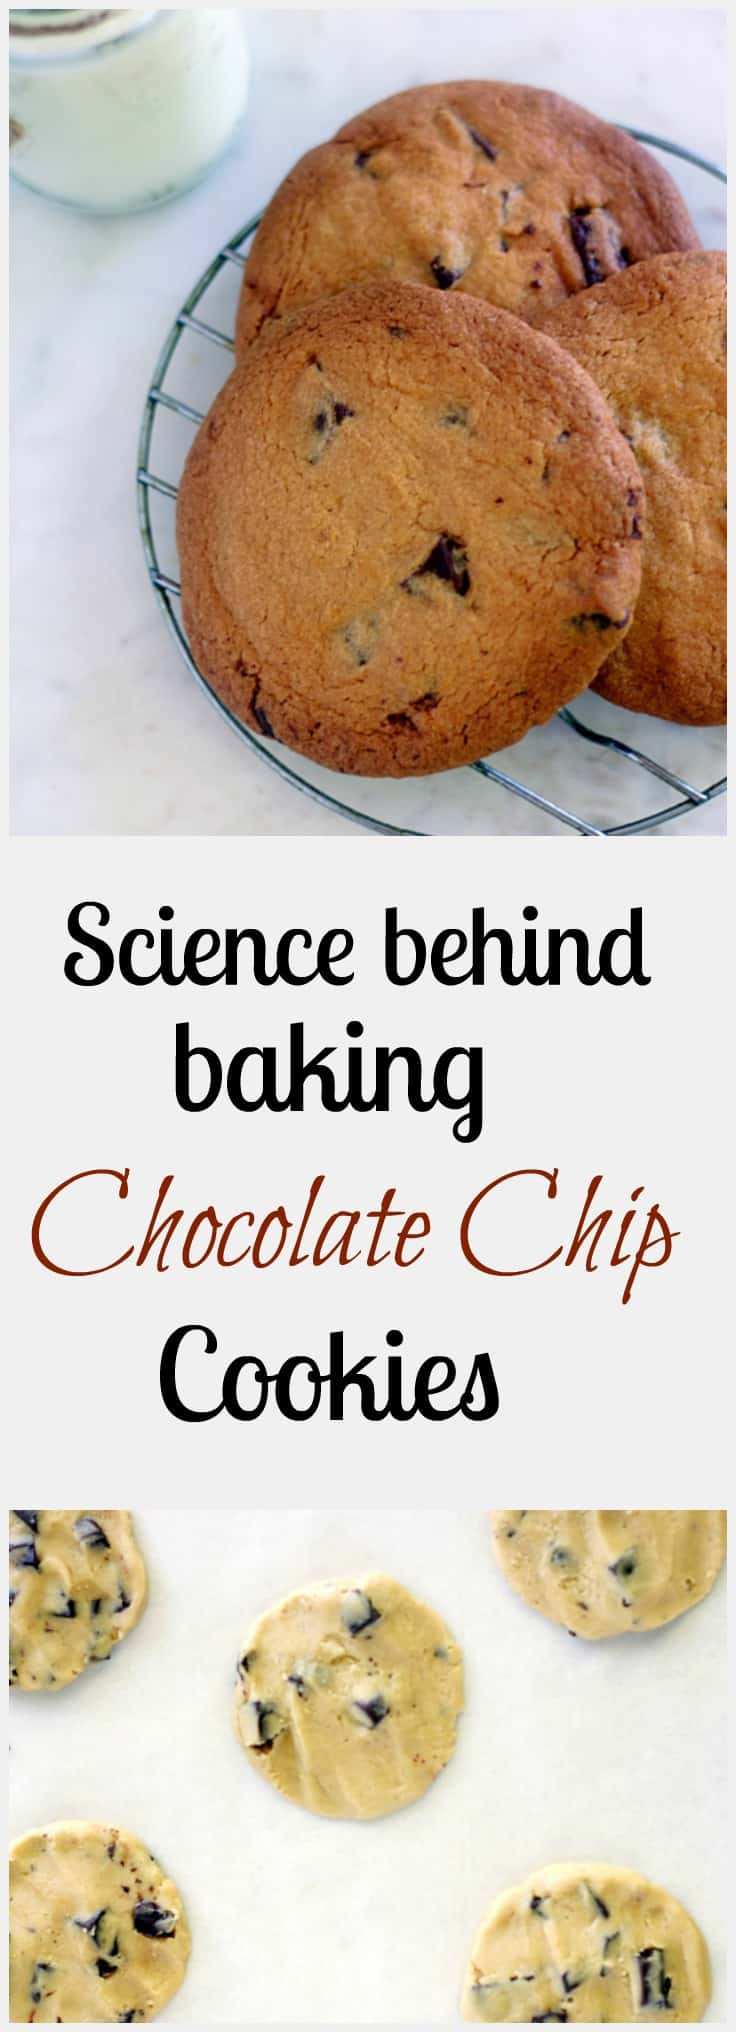 science-behind-chocolate-chip-cookies step by step method of baking cookies with amazing food photography and all the tips and tricks